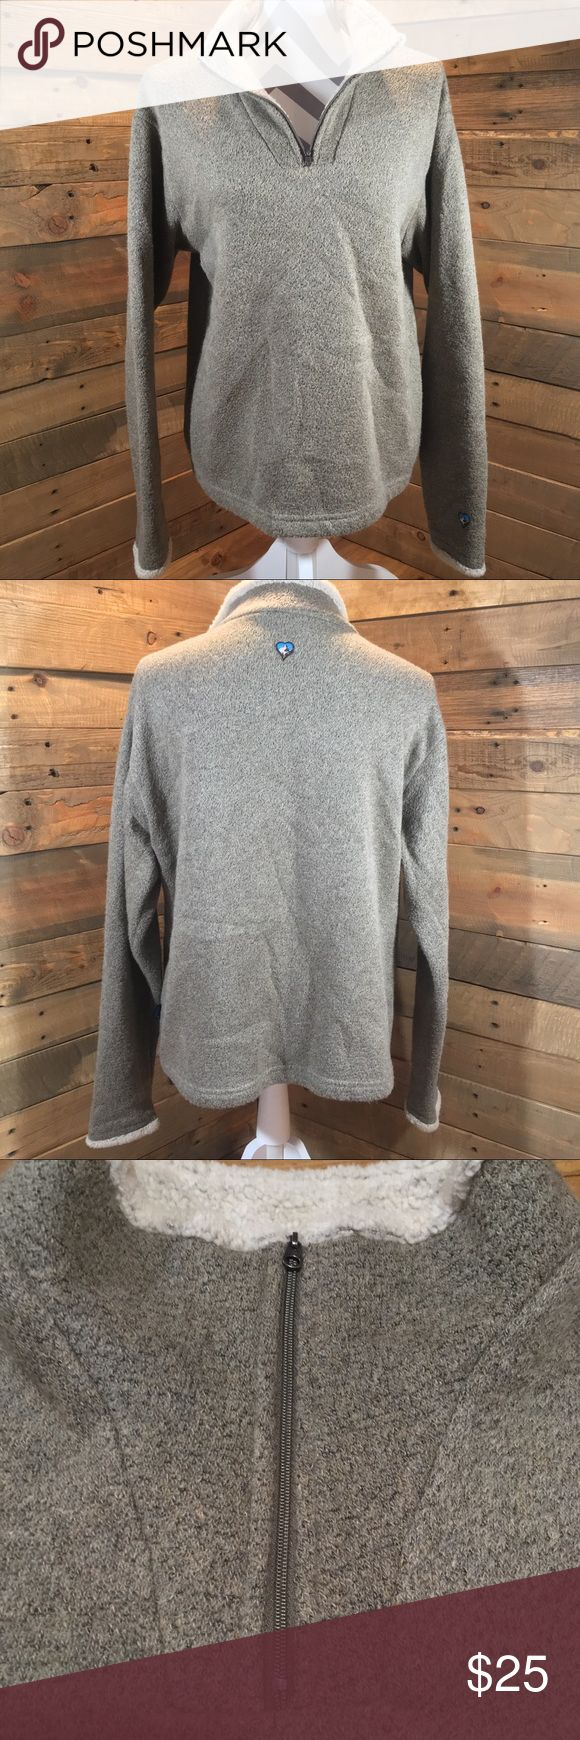 """KÜHL """"ALFPACA"""" PULLOVER SOFT FLEECE KÜHL """"ALFPACA"""" 1/4 ZIP PULLOVER SOFT FLEECE Excellent Used Condition Tan/Cream 78% Acrylic/22% Polyester CHEST: 23.5 inches LENGTH: 25 inches SLEEVE: 21 inches (see measurement guide) SIZE: X-Large ¼ Zip Pullover/Semi-Fitted-Relaxed Fit #10061 Kuhl Sweaters"""